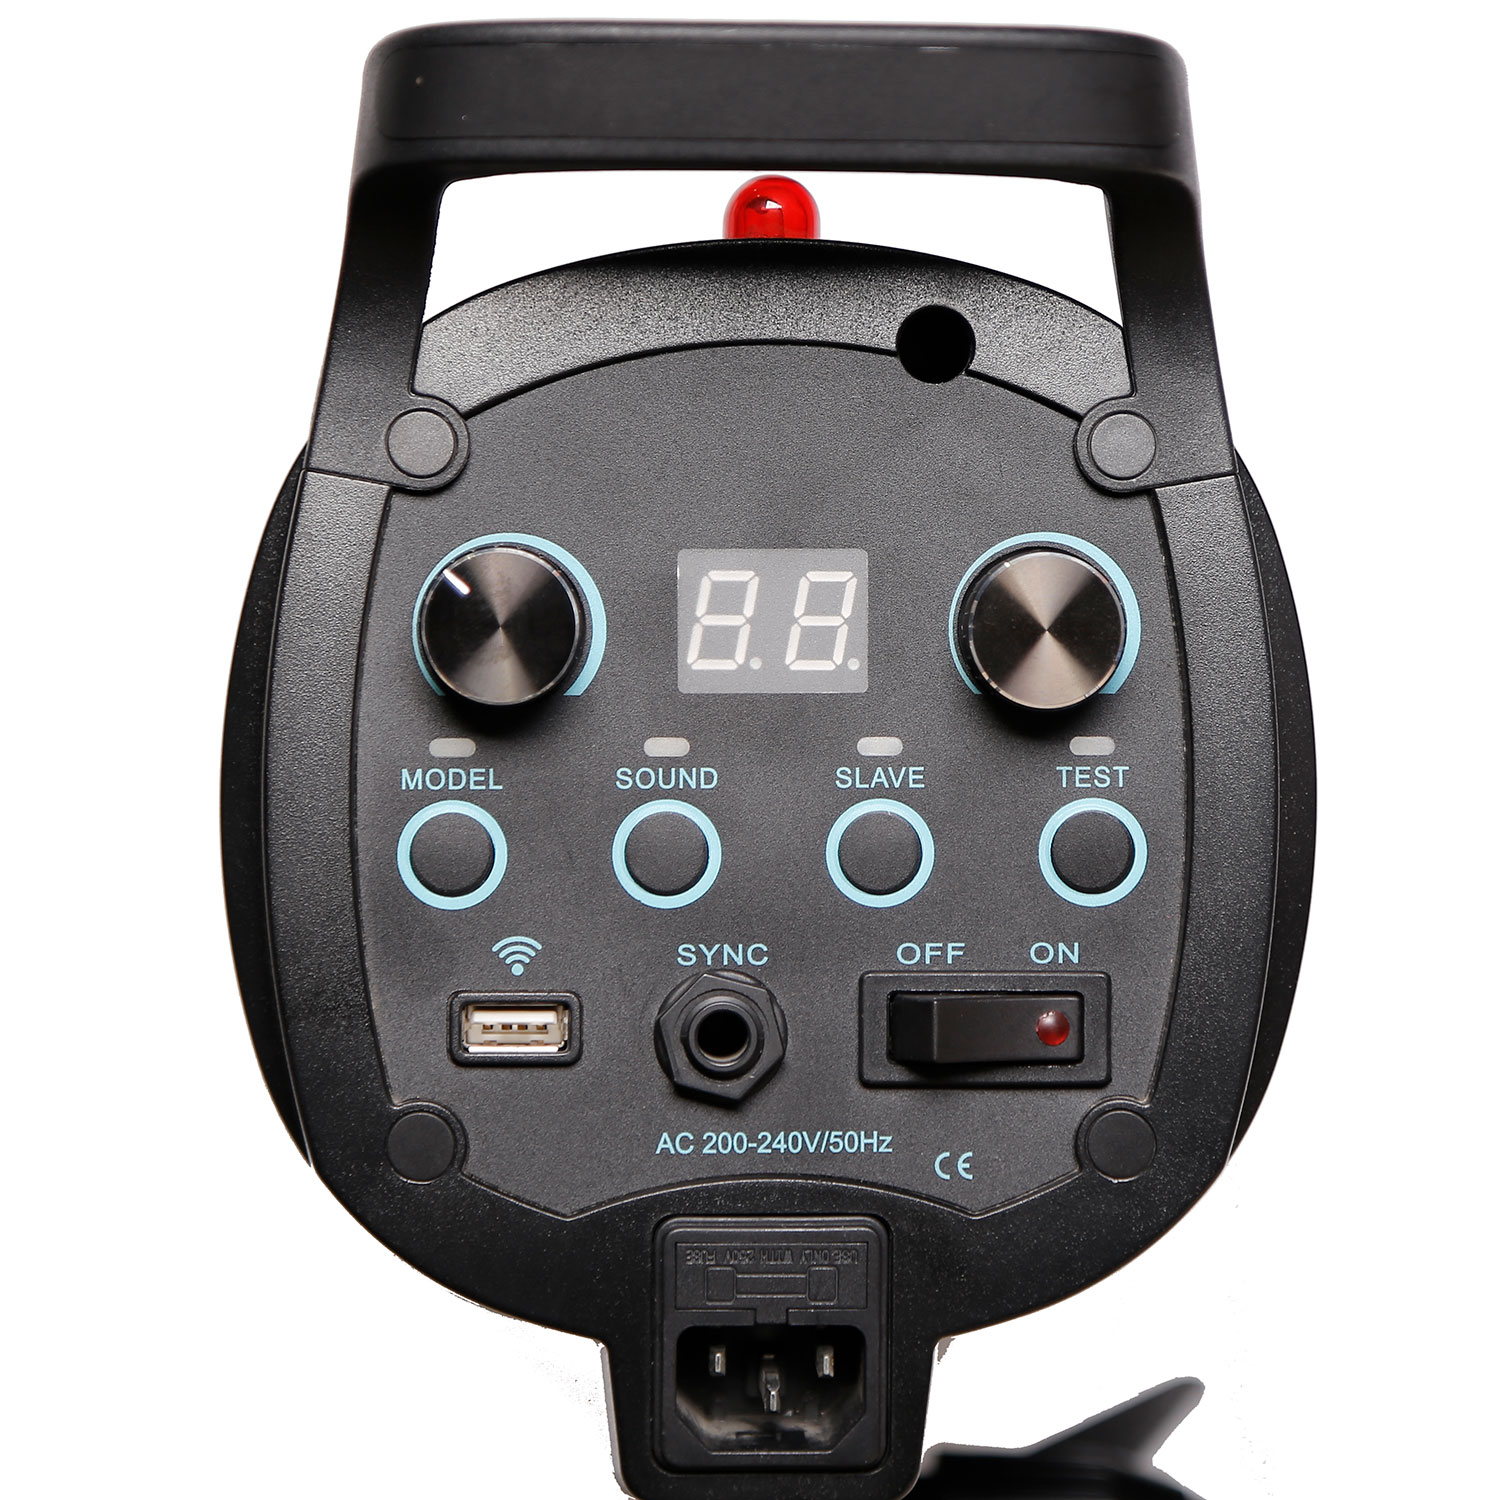 S&S Studio Flash QS300